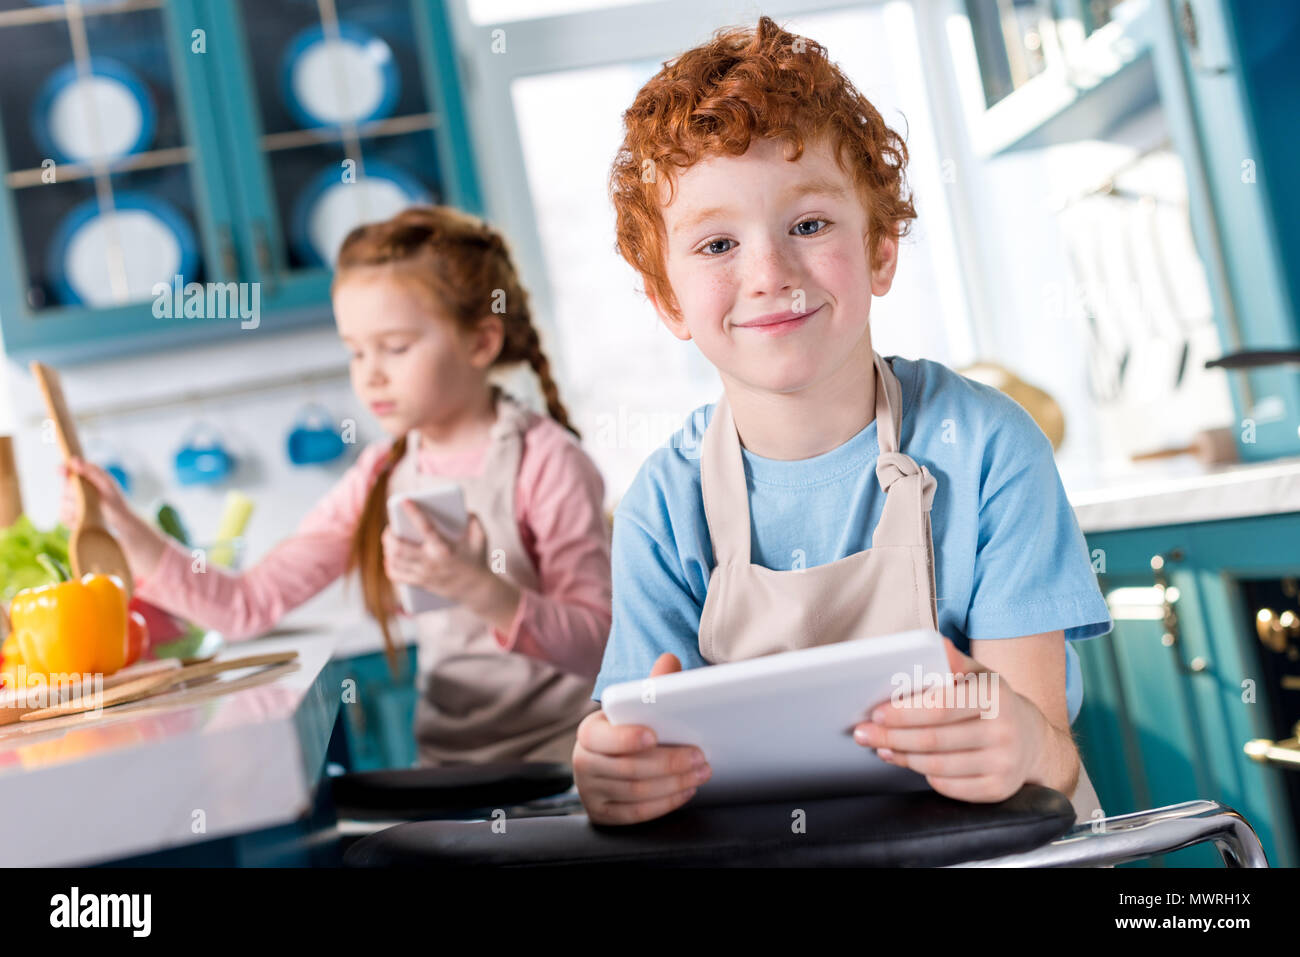 cute little boy with digital tablet smiling at camera while child with smartphone cooking behind - Stock Image